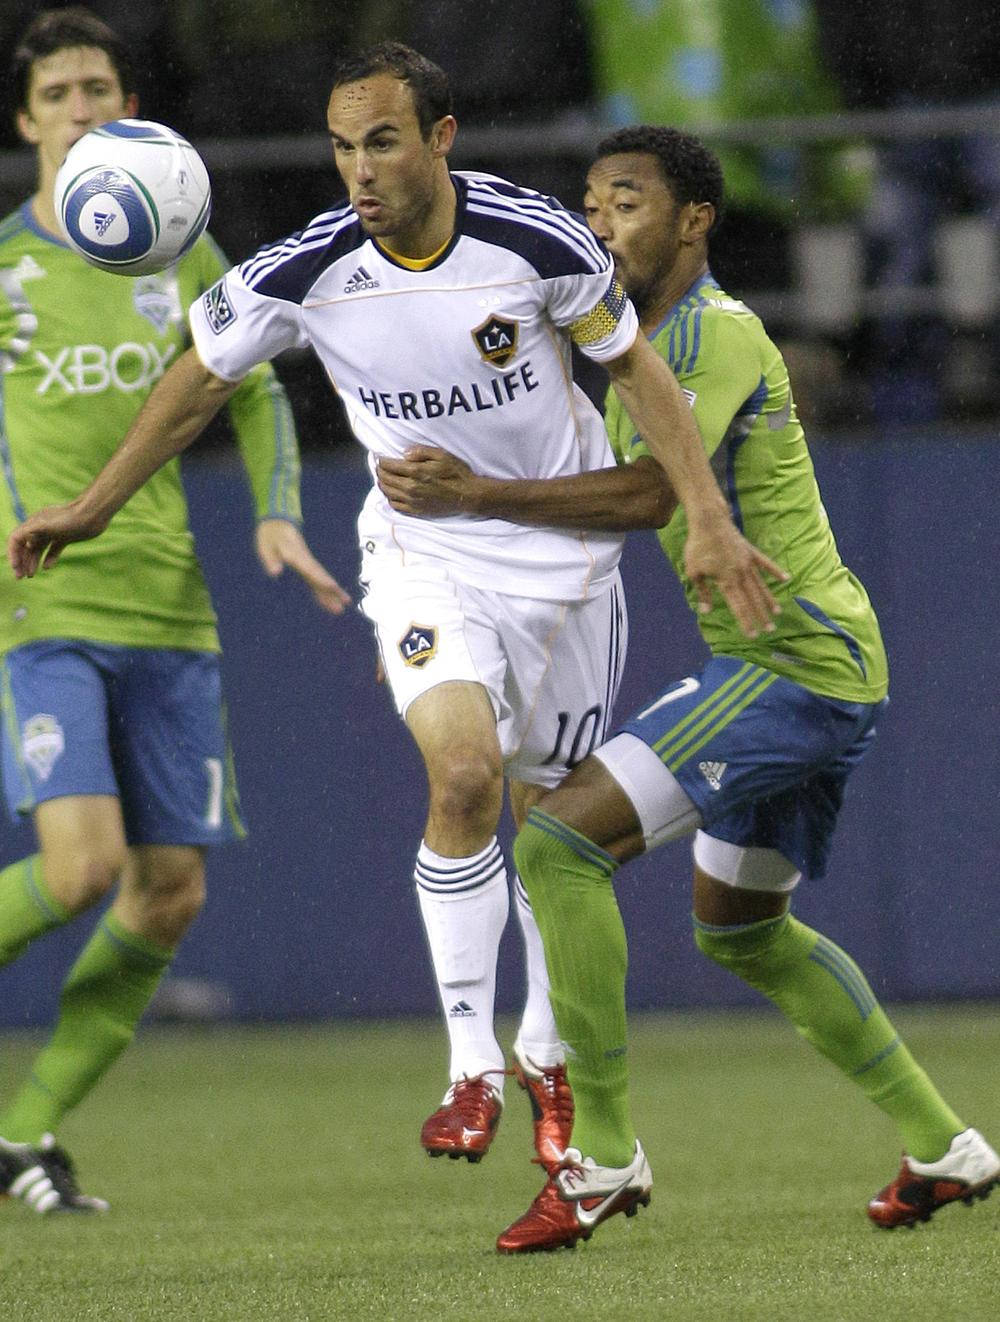 The Los Angeles Galaxy are chock full of superstars, including Landon Donovan and David Beckham. But will MLS ever have enough star power to be top of mind among American sports fans?. (AP)